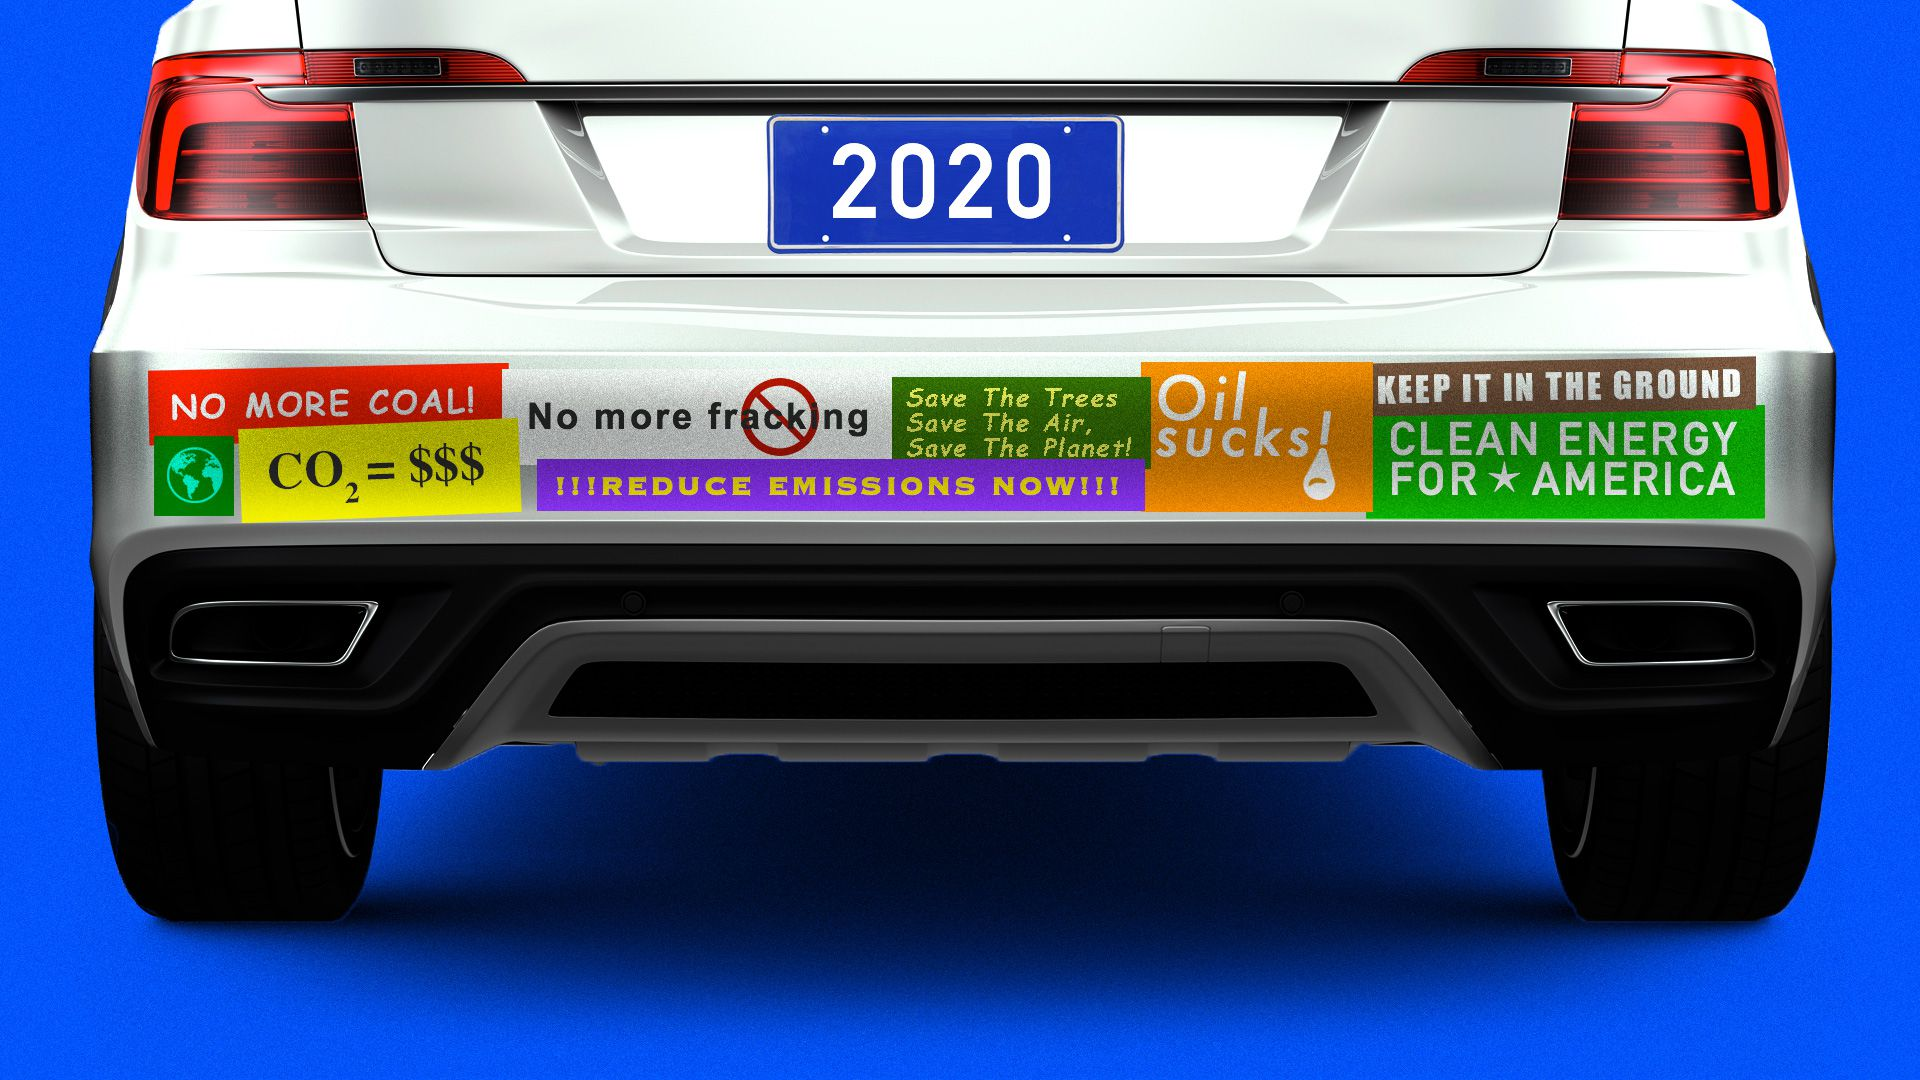 A car overloaded with climate change bumper stickers